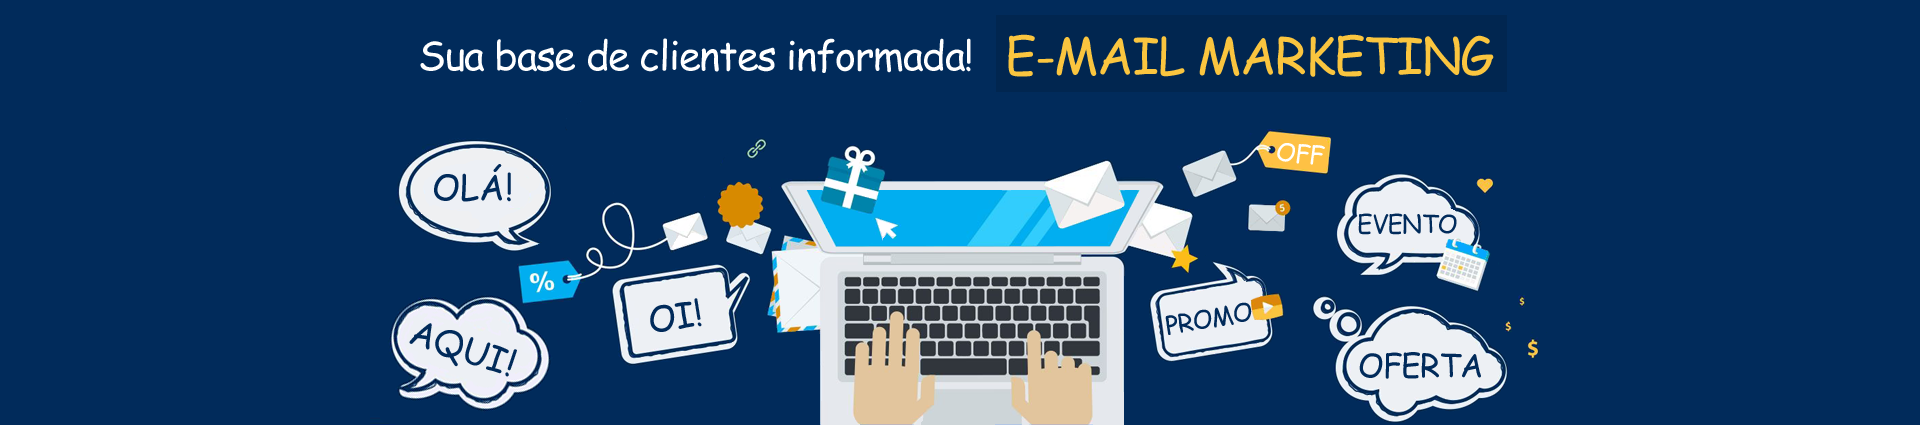 E-mail marketing - mailing